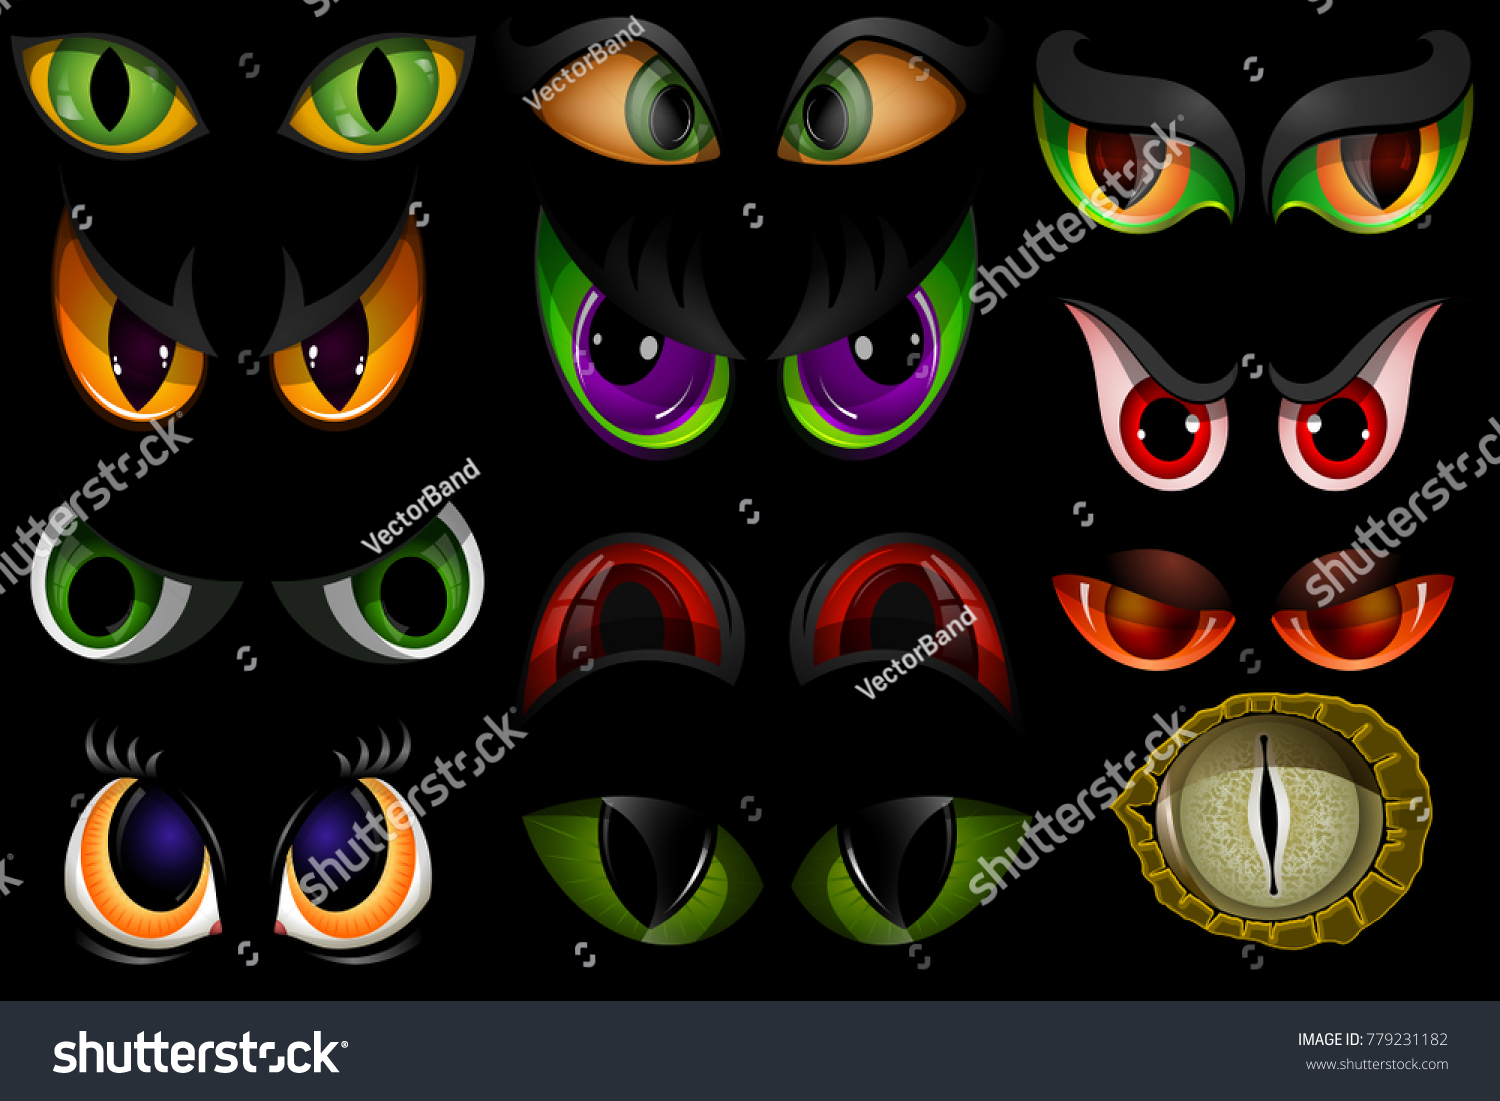 831b71e0b8e8 Cartoon vector eyes beast devil monster animals eyeballs of angry or scary  expressions evil eyebrow and